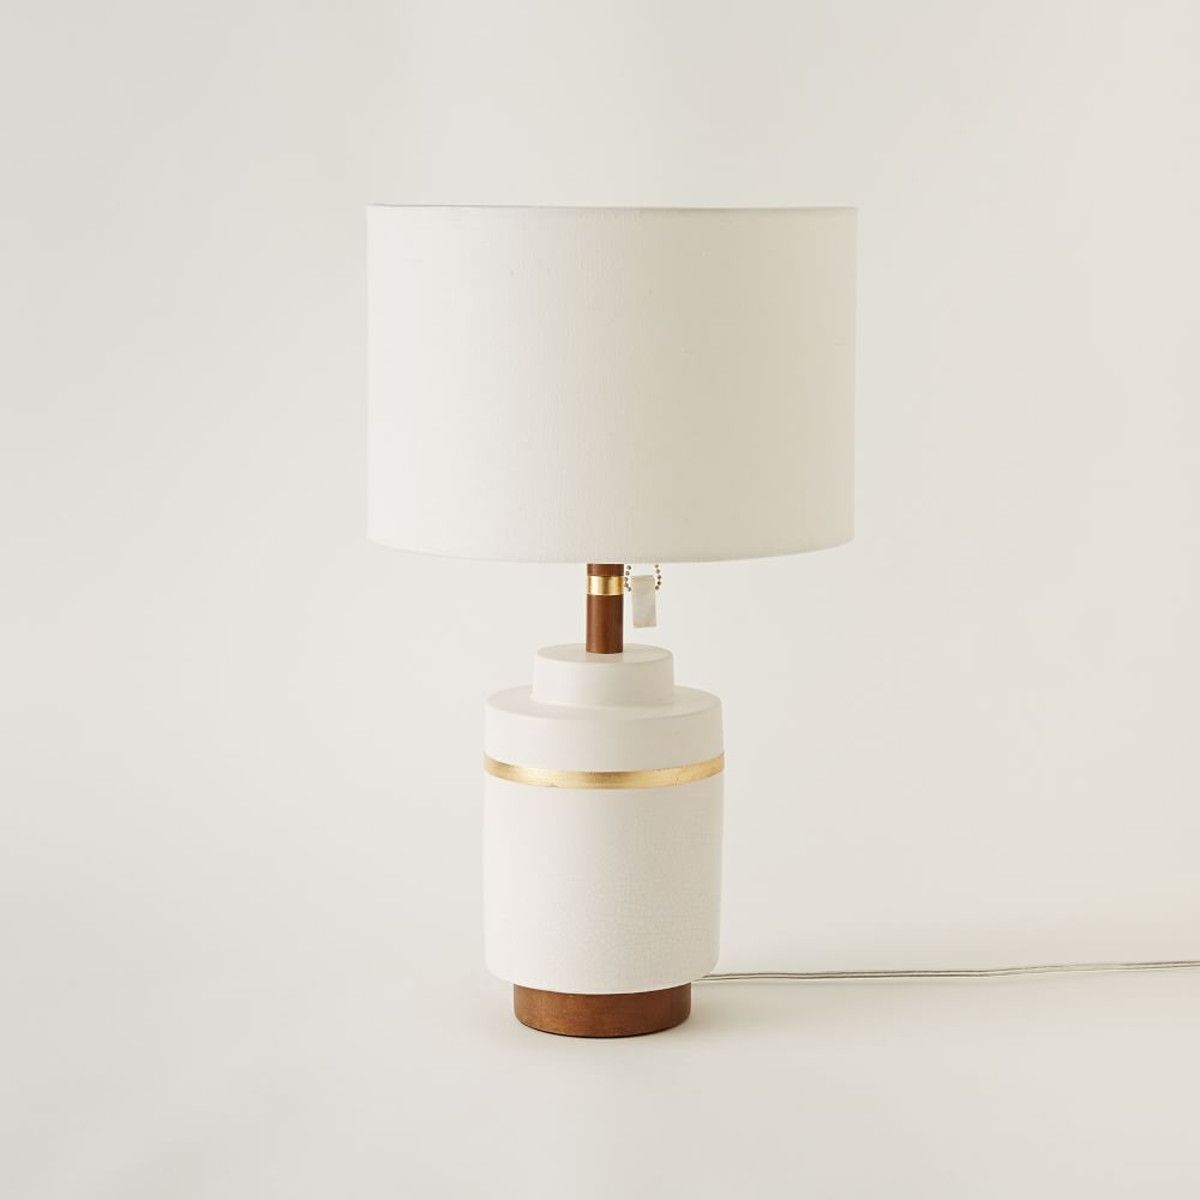 Captivating Creative Firm Roar + Rabbit Designs Textiles, Furniture And Home  Accessories That Blend Modern Style With Whimsical Details. This Ceramic  Table Lampu2014with ...